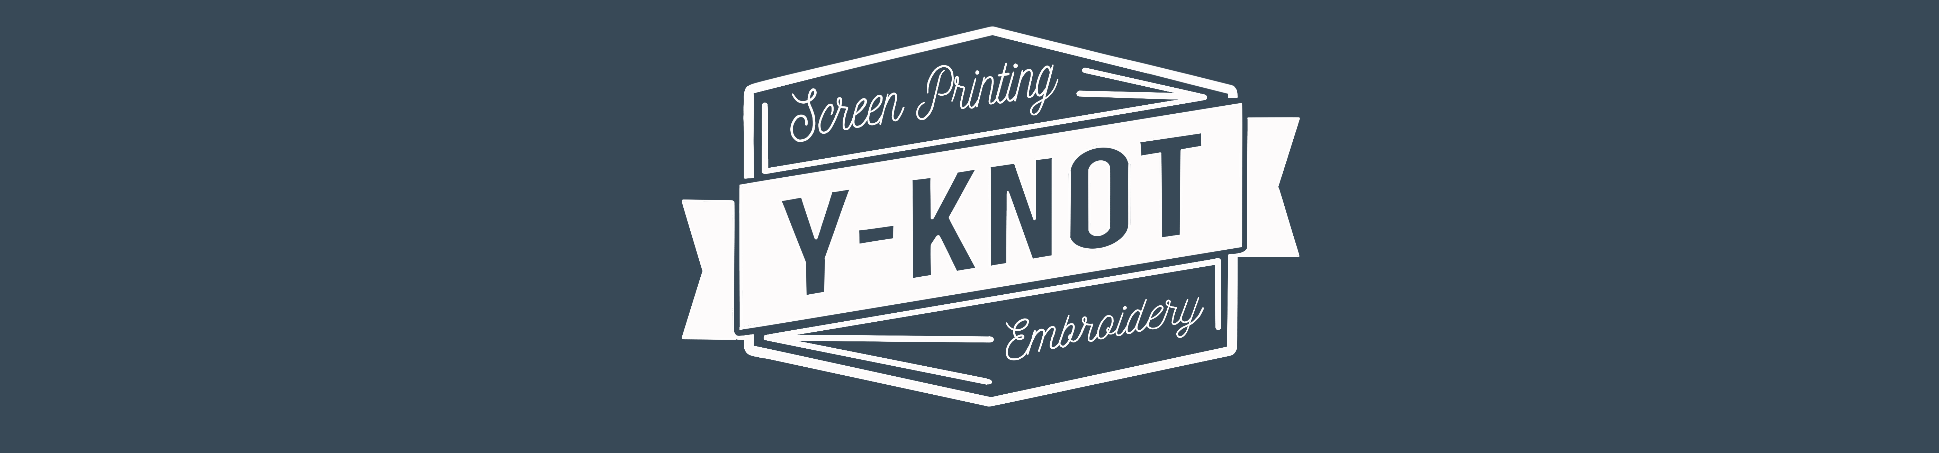 Y-Knot Embroidery & Screen Printing